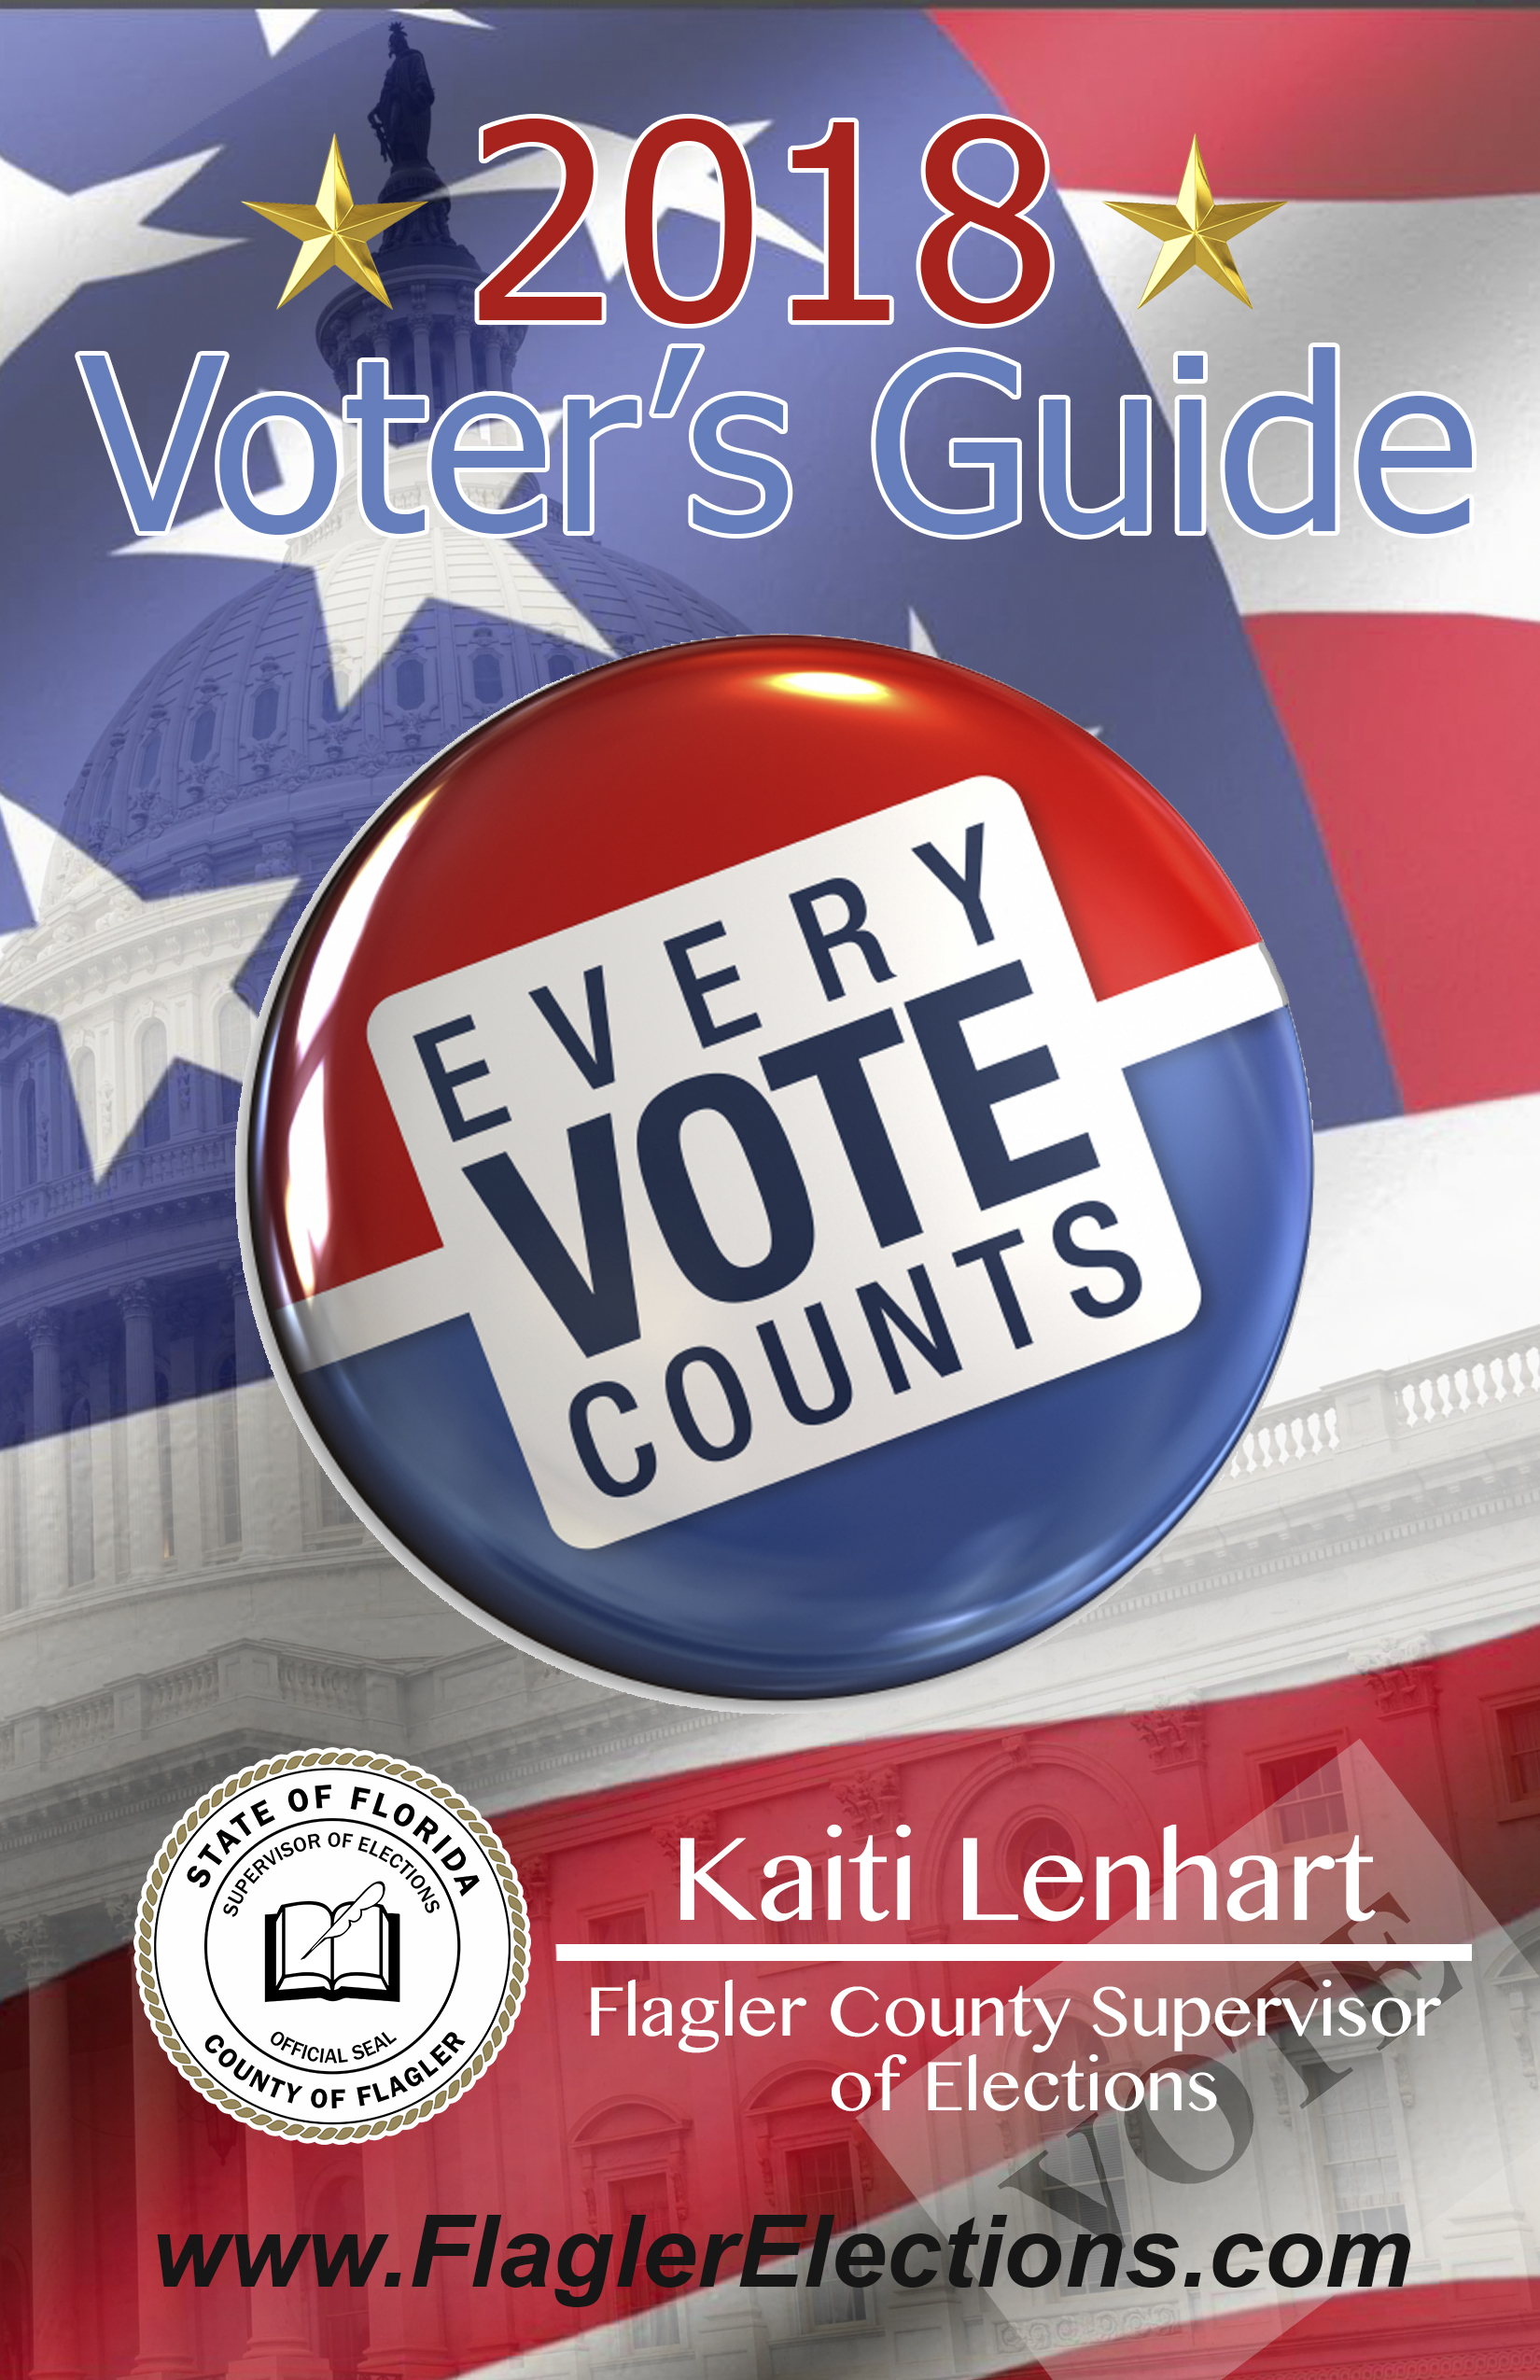 2018 Voter's Guide